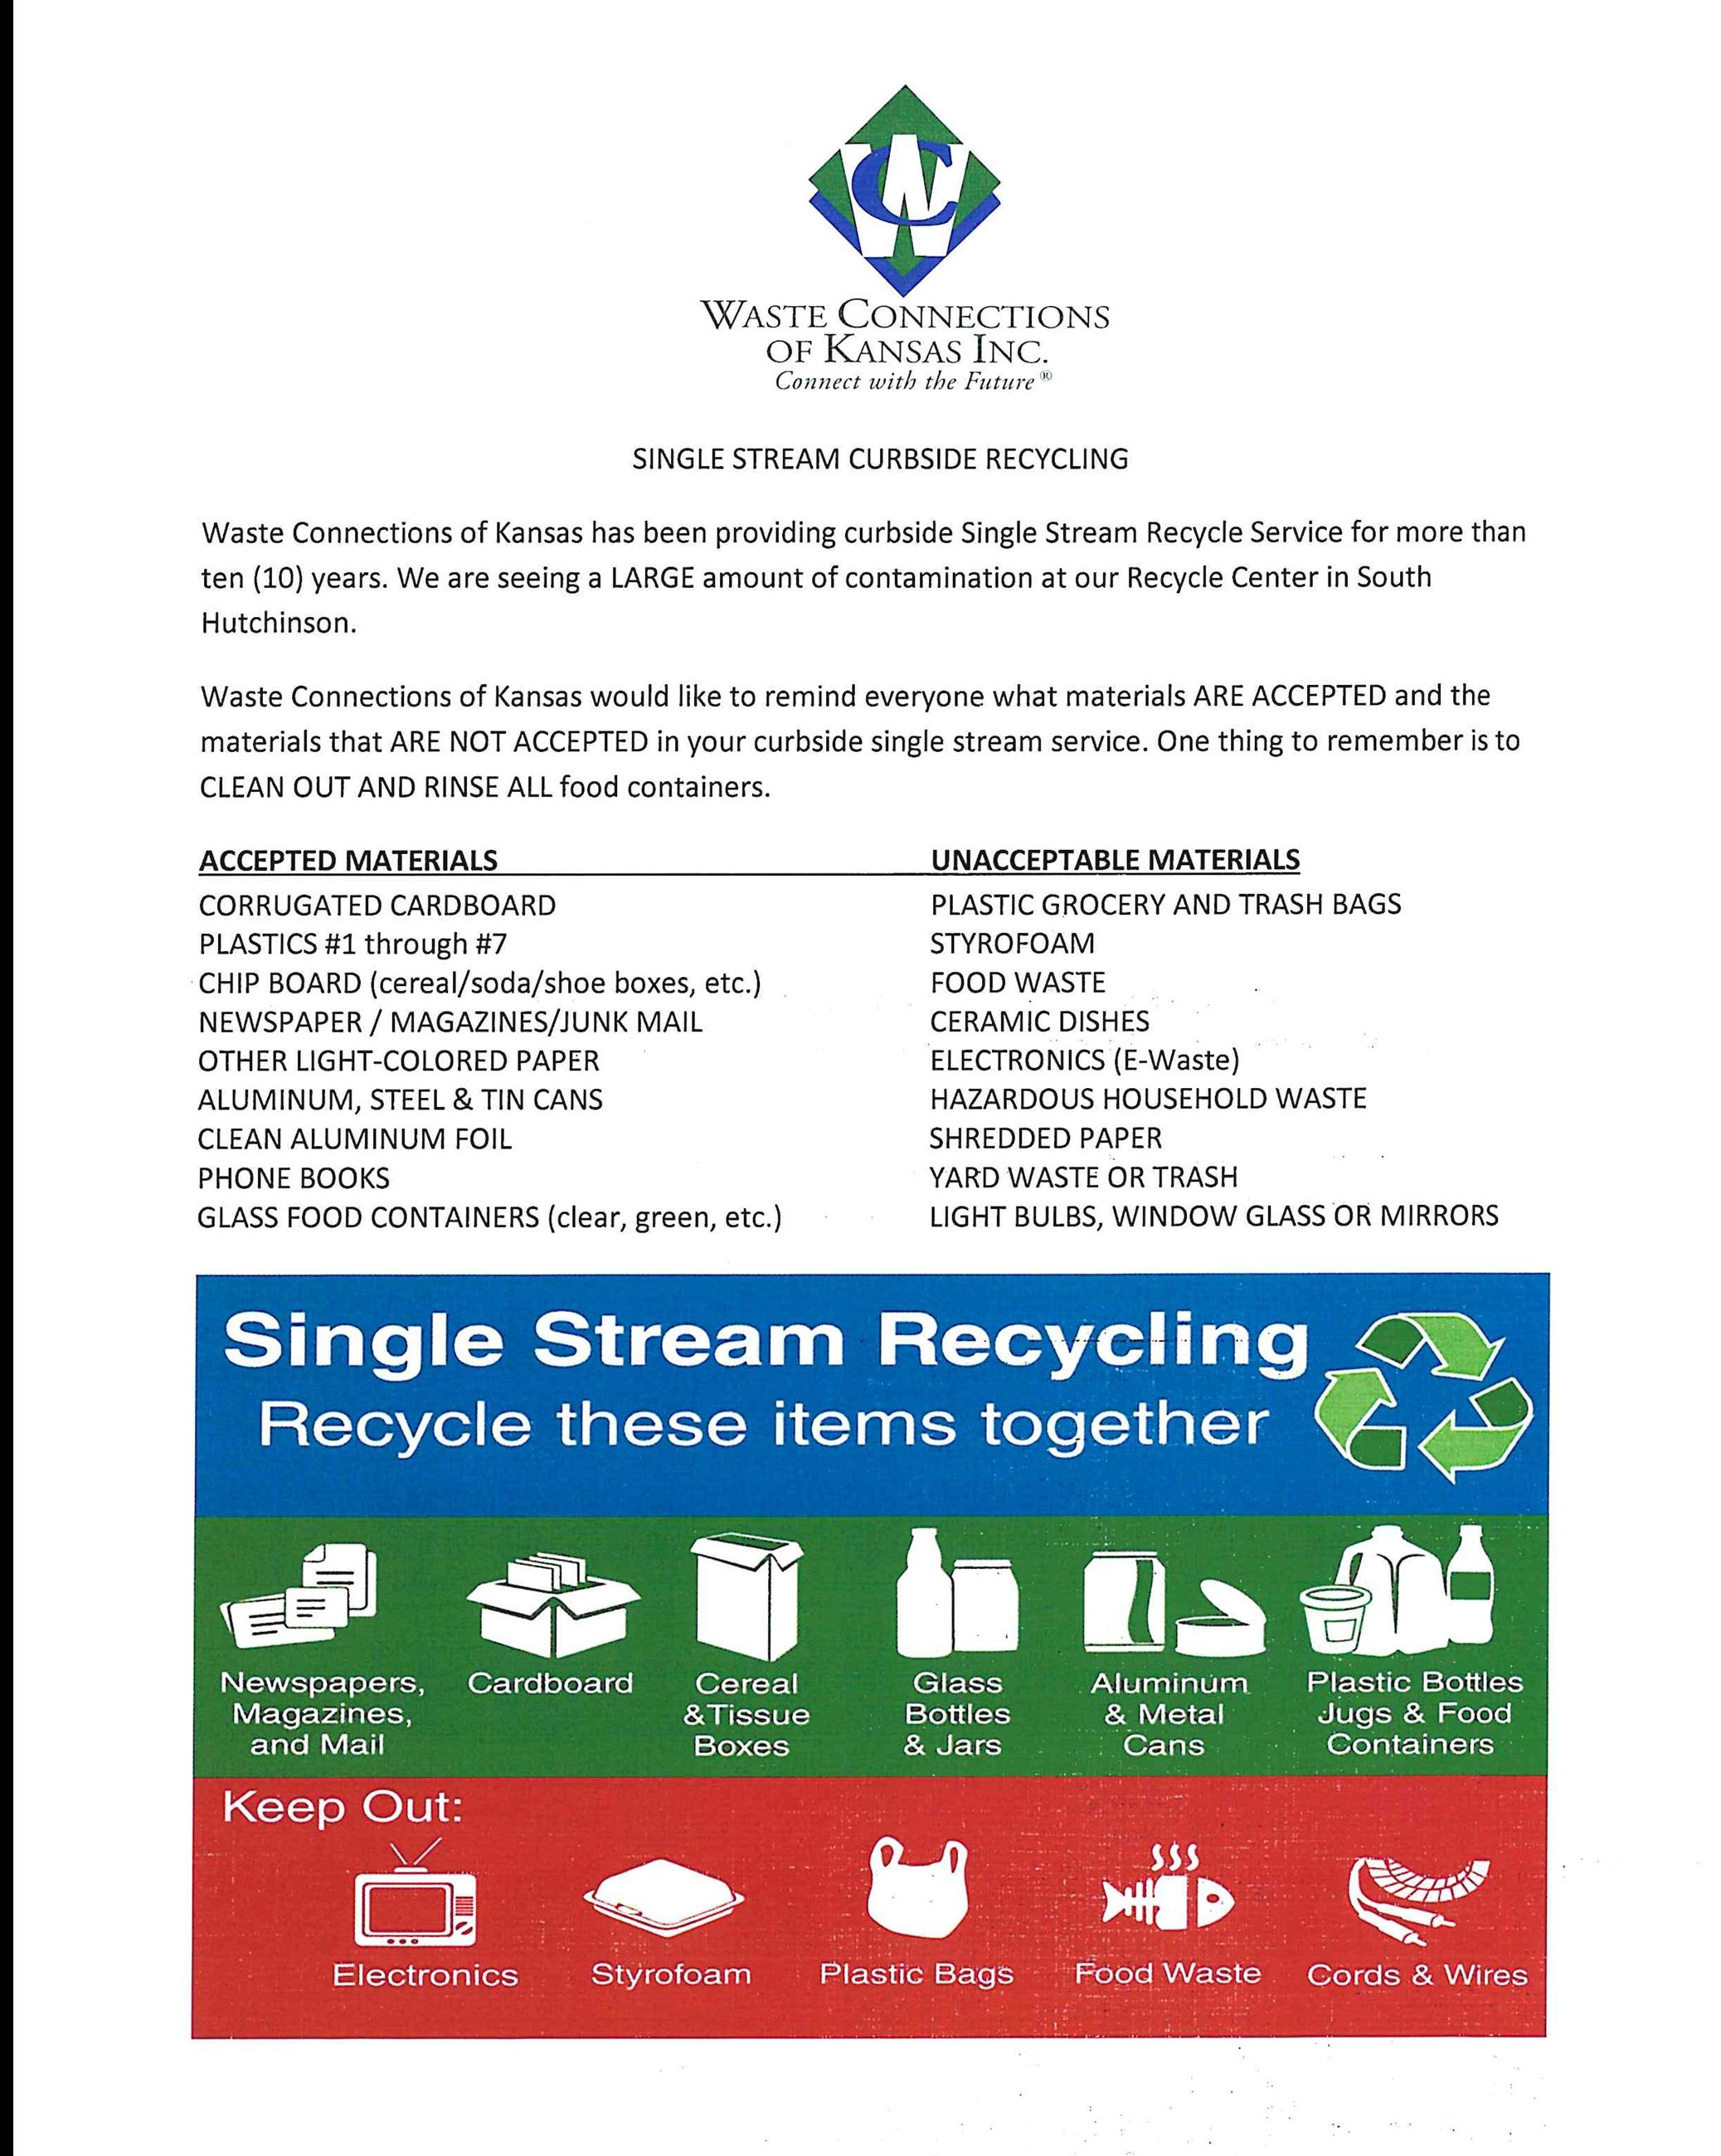 WASTE CONNECTIONS OF KANSAS SINGLE STREAM CURBSIDE RECYCLING .docx